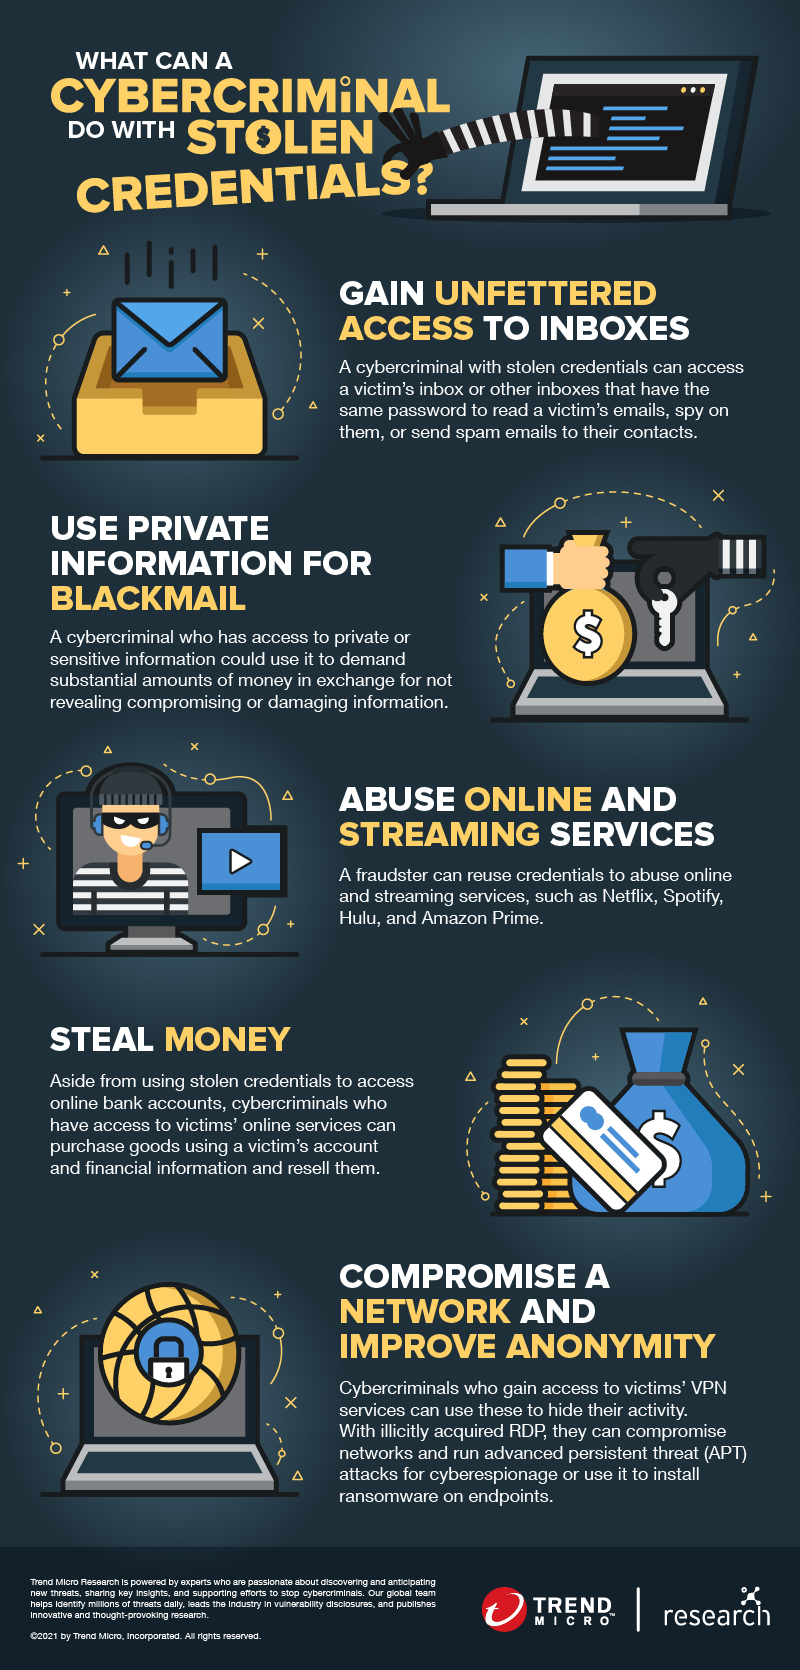 What can a cybercriminal do with stolen credentials